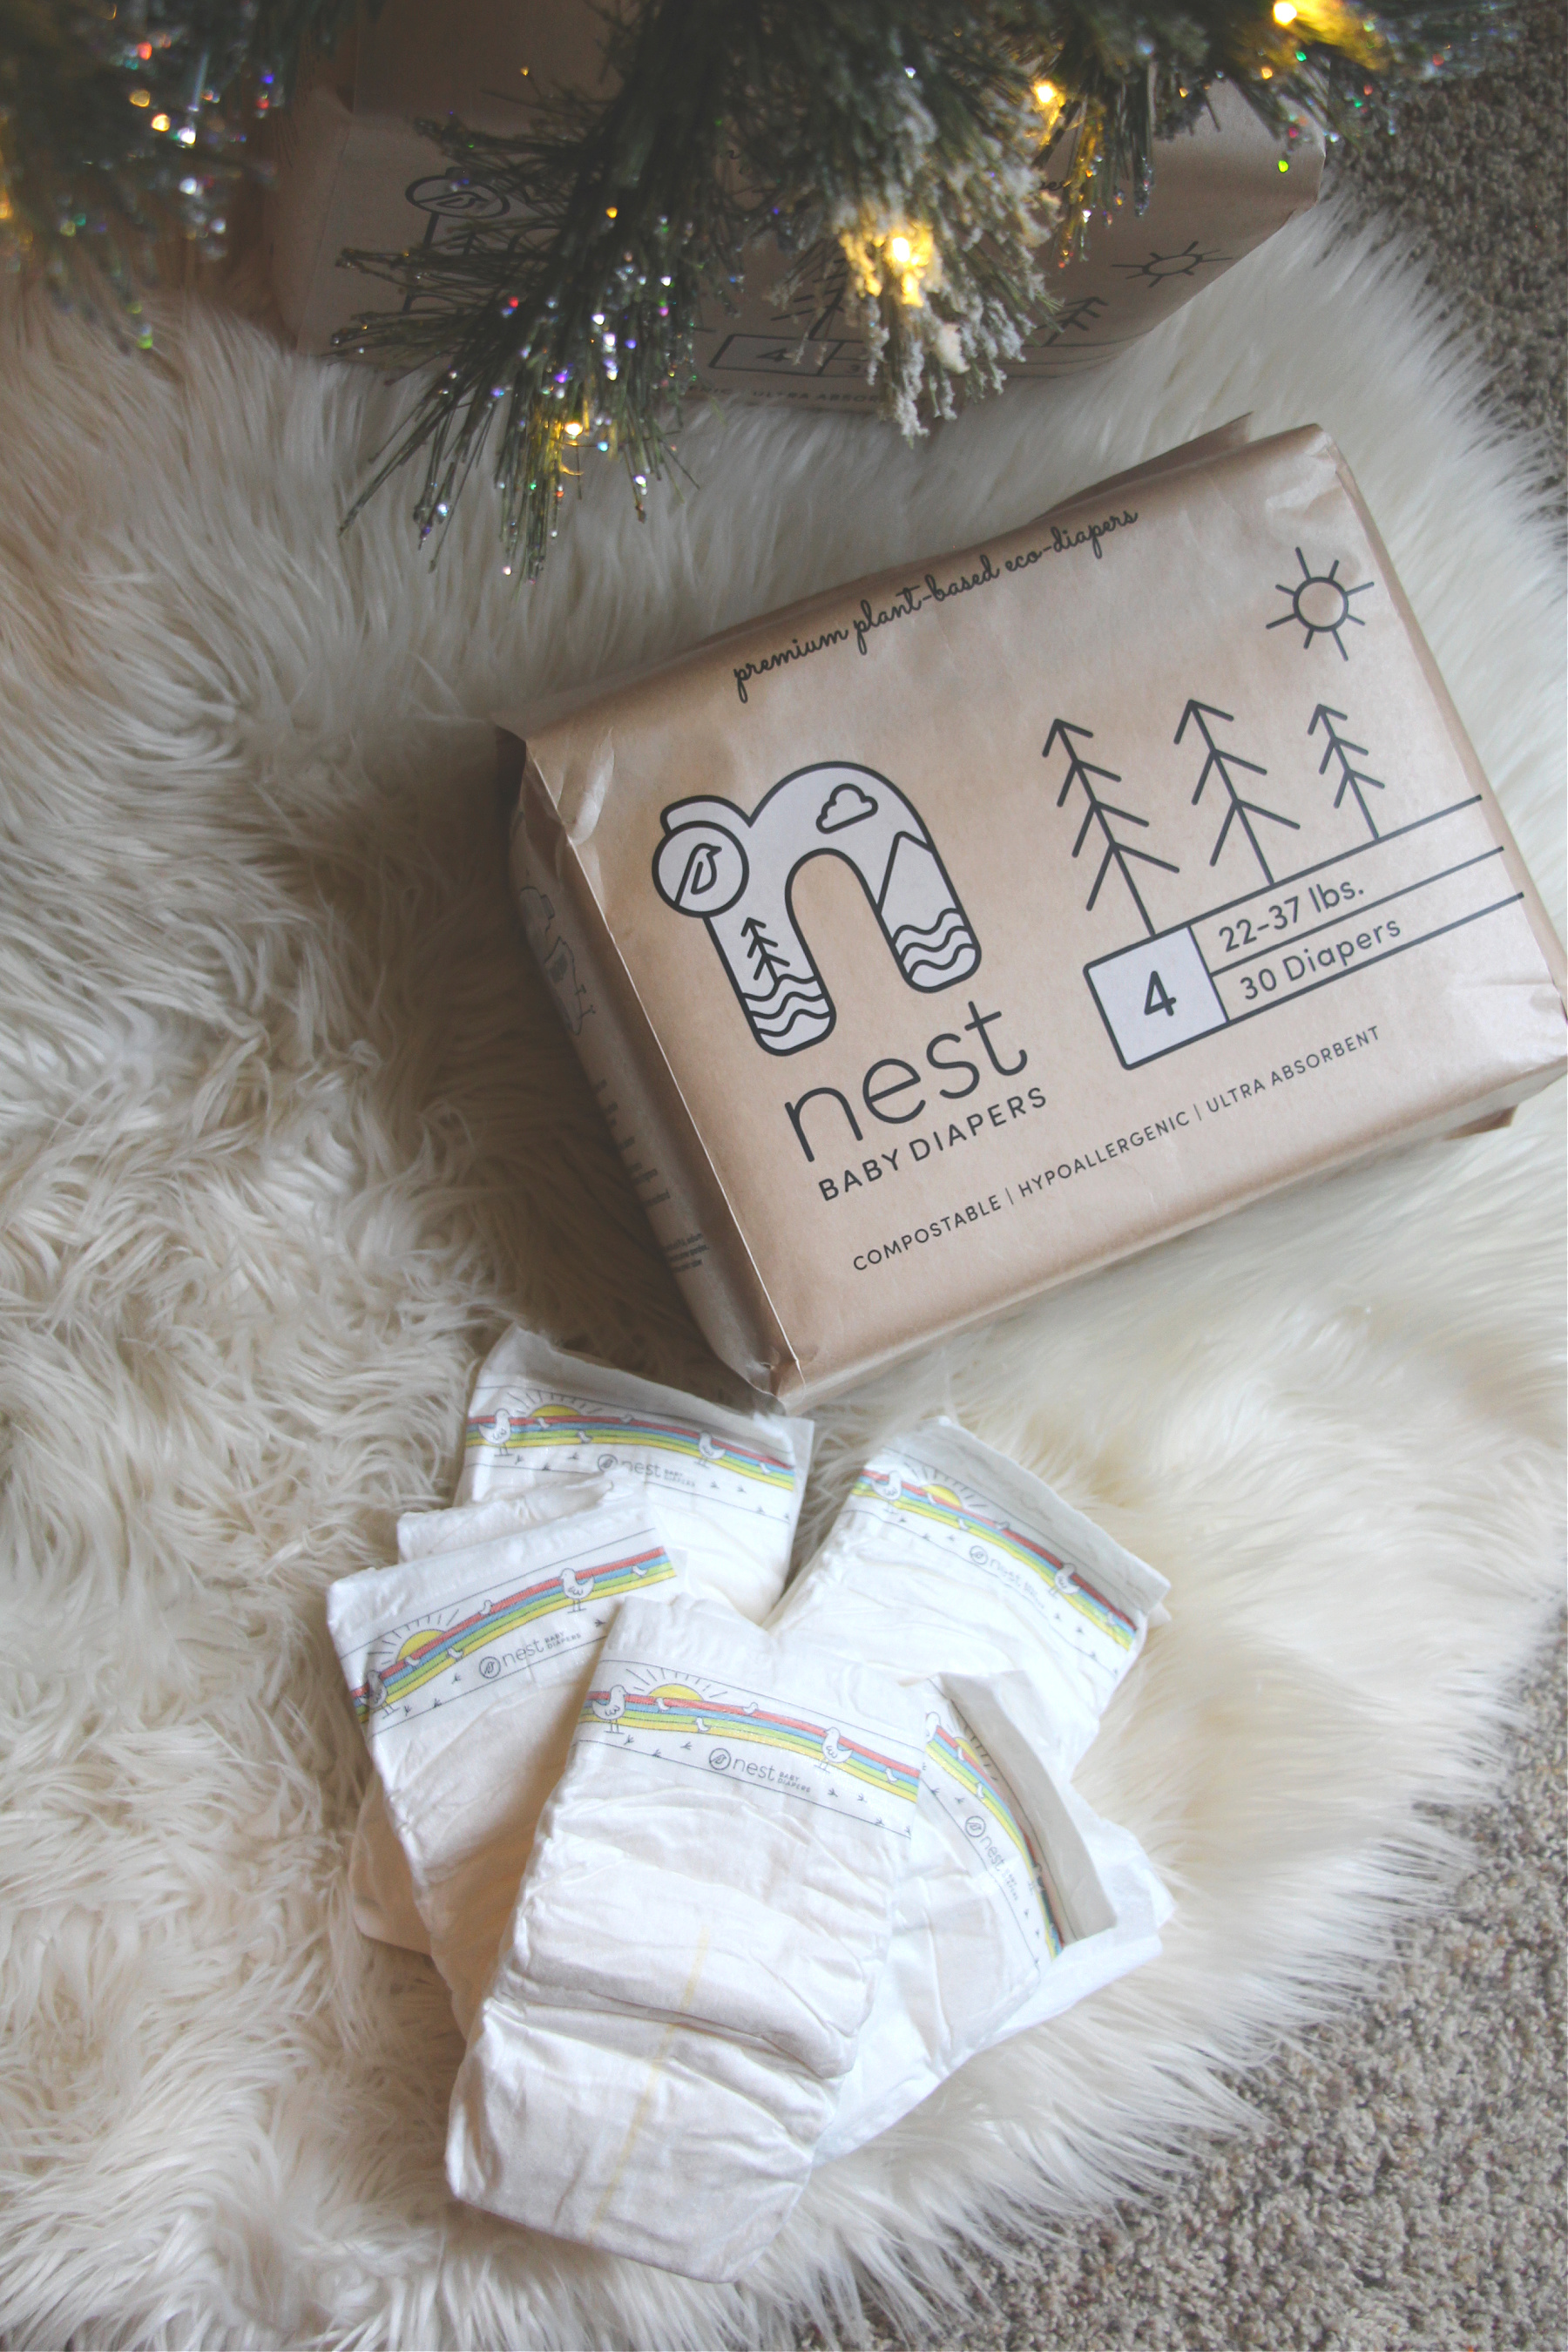 Say Hello To Nest Biodegradable & Compostable Diapers!